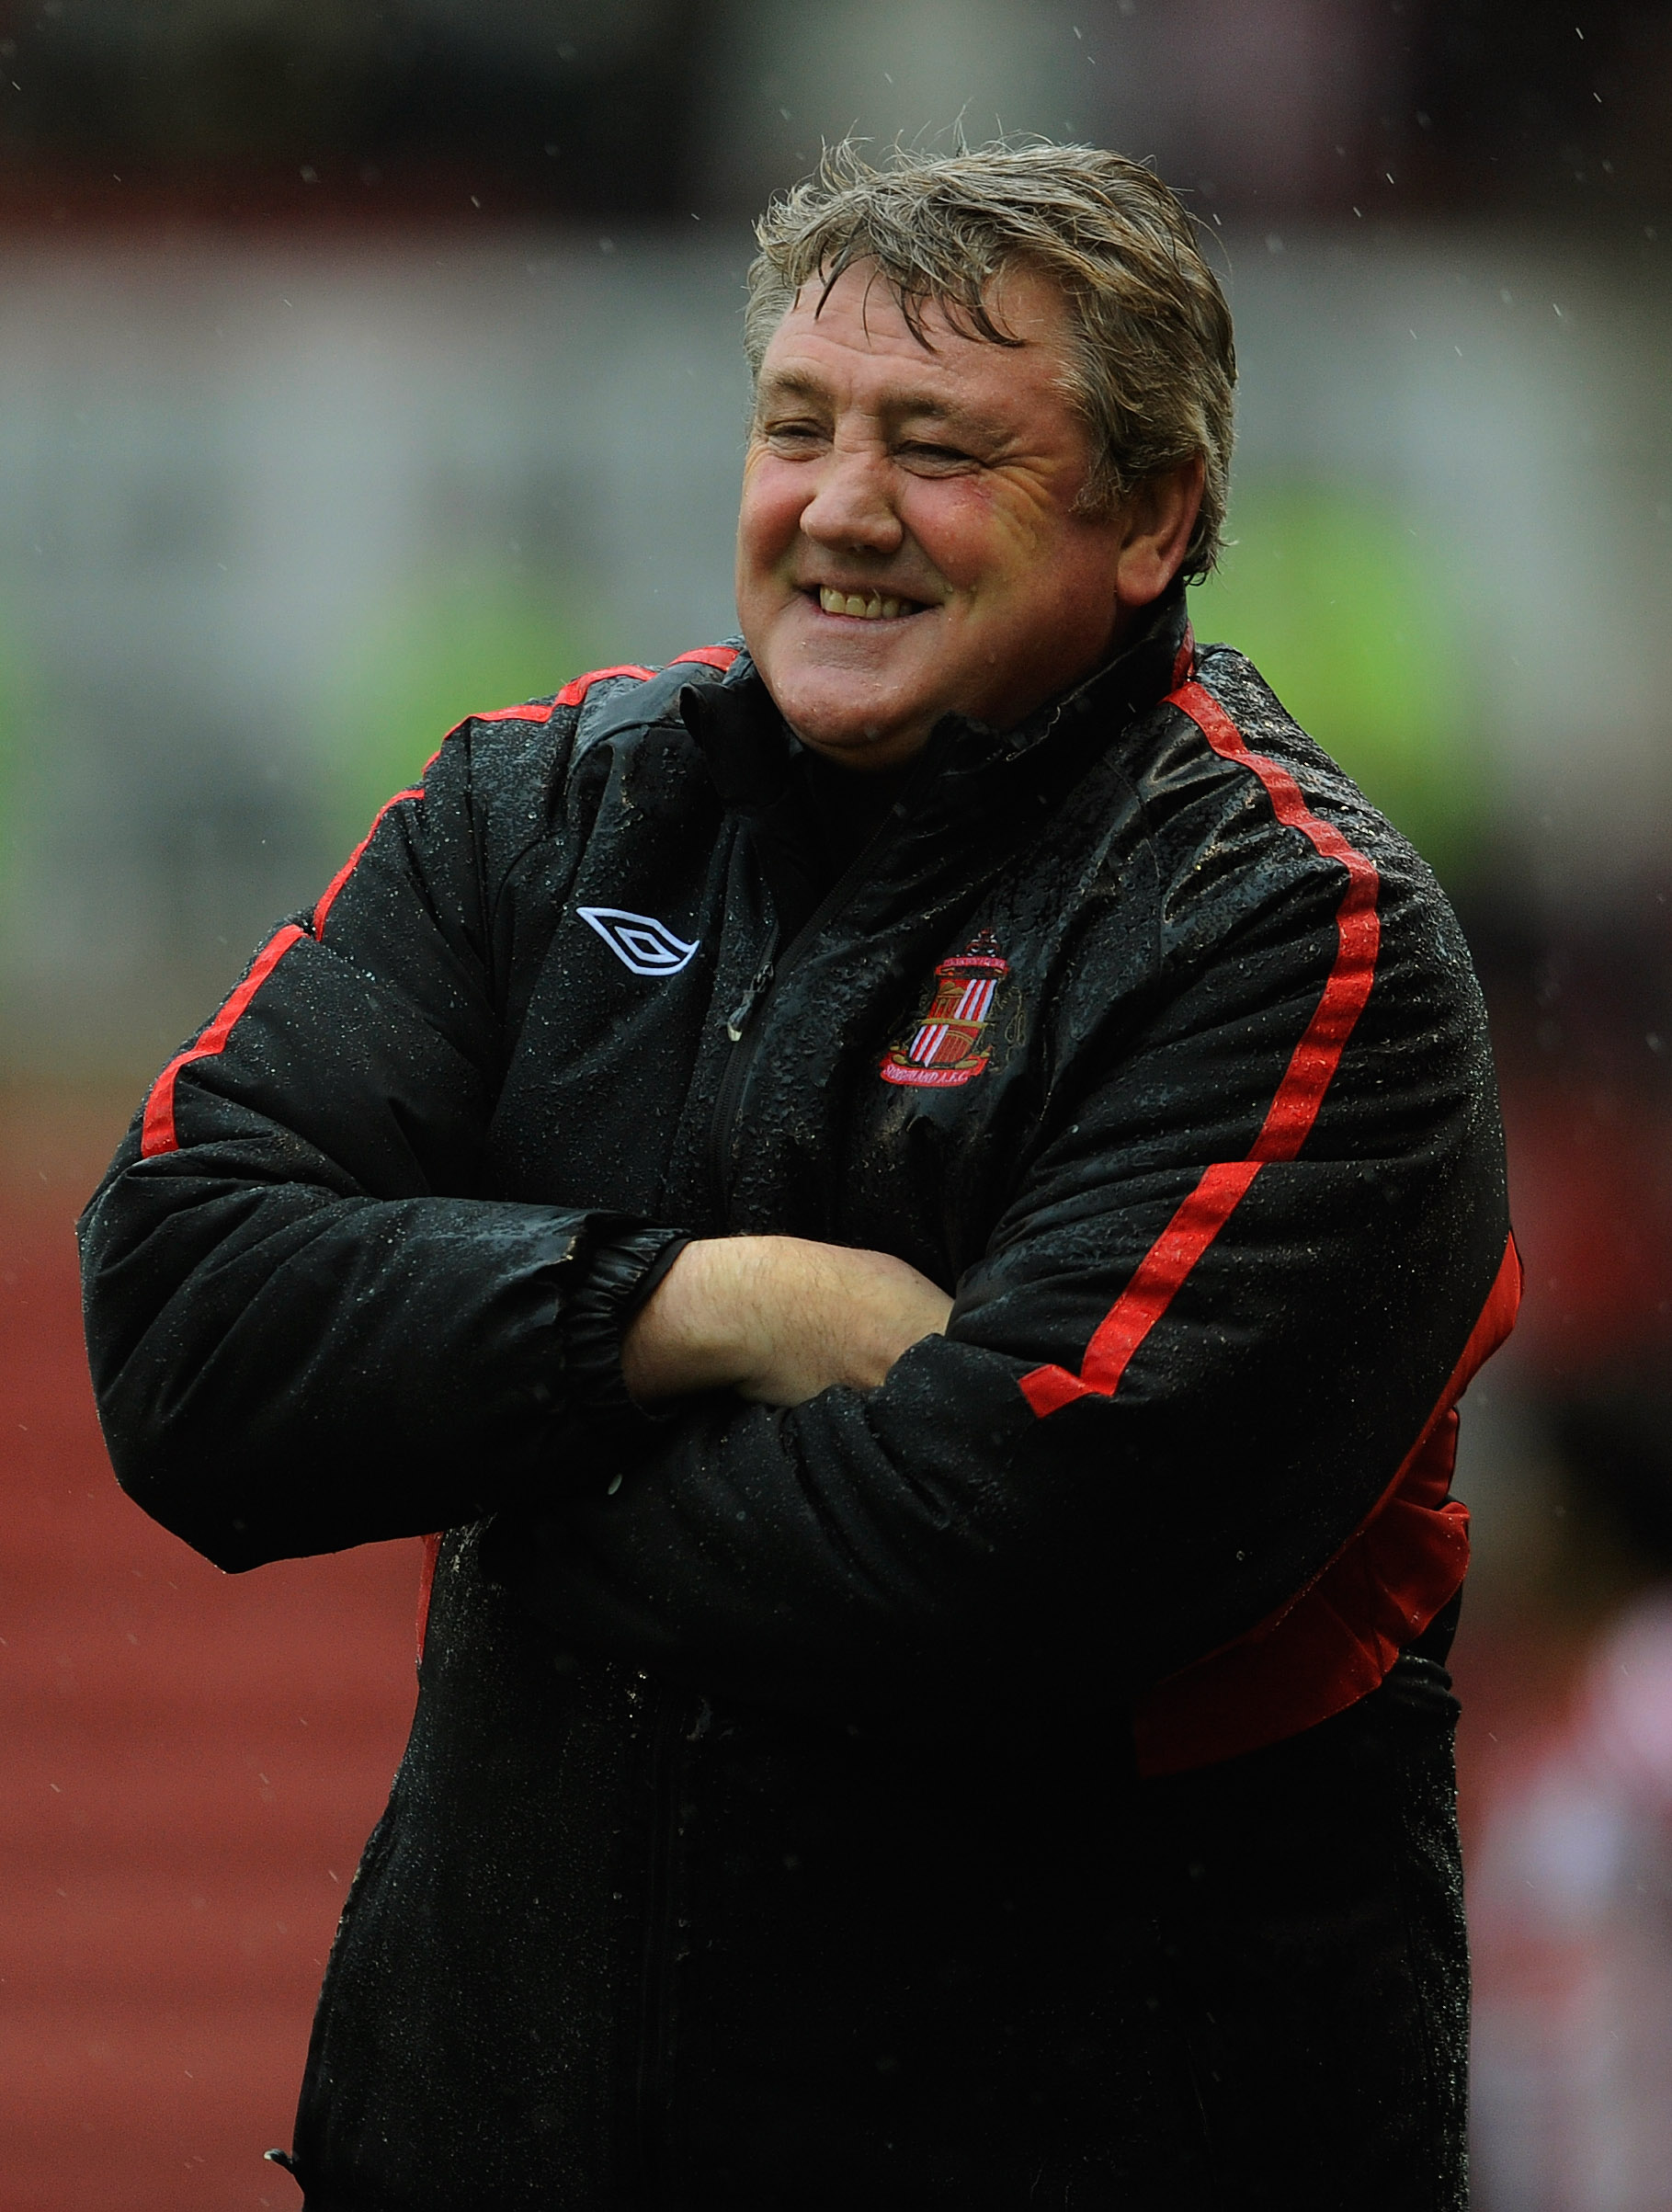 STOKE ON TRENT, ENGLAND - FEBRUARY 05: Sunderland manager Steve Bruce smiles during the Barclays Premier League match between Stoke City and Sunderland at the Britannia Stadium on February 5, 2011 in Stoke on Trent, England.  (Photo by Michael Regan/Getty